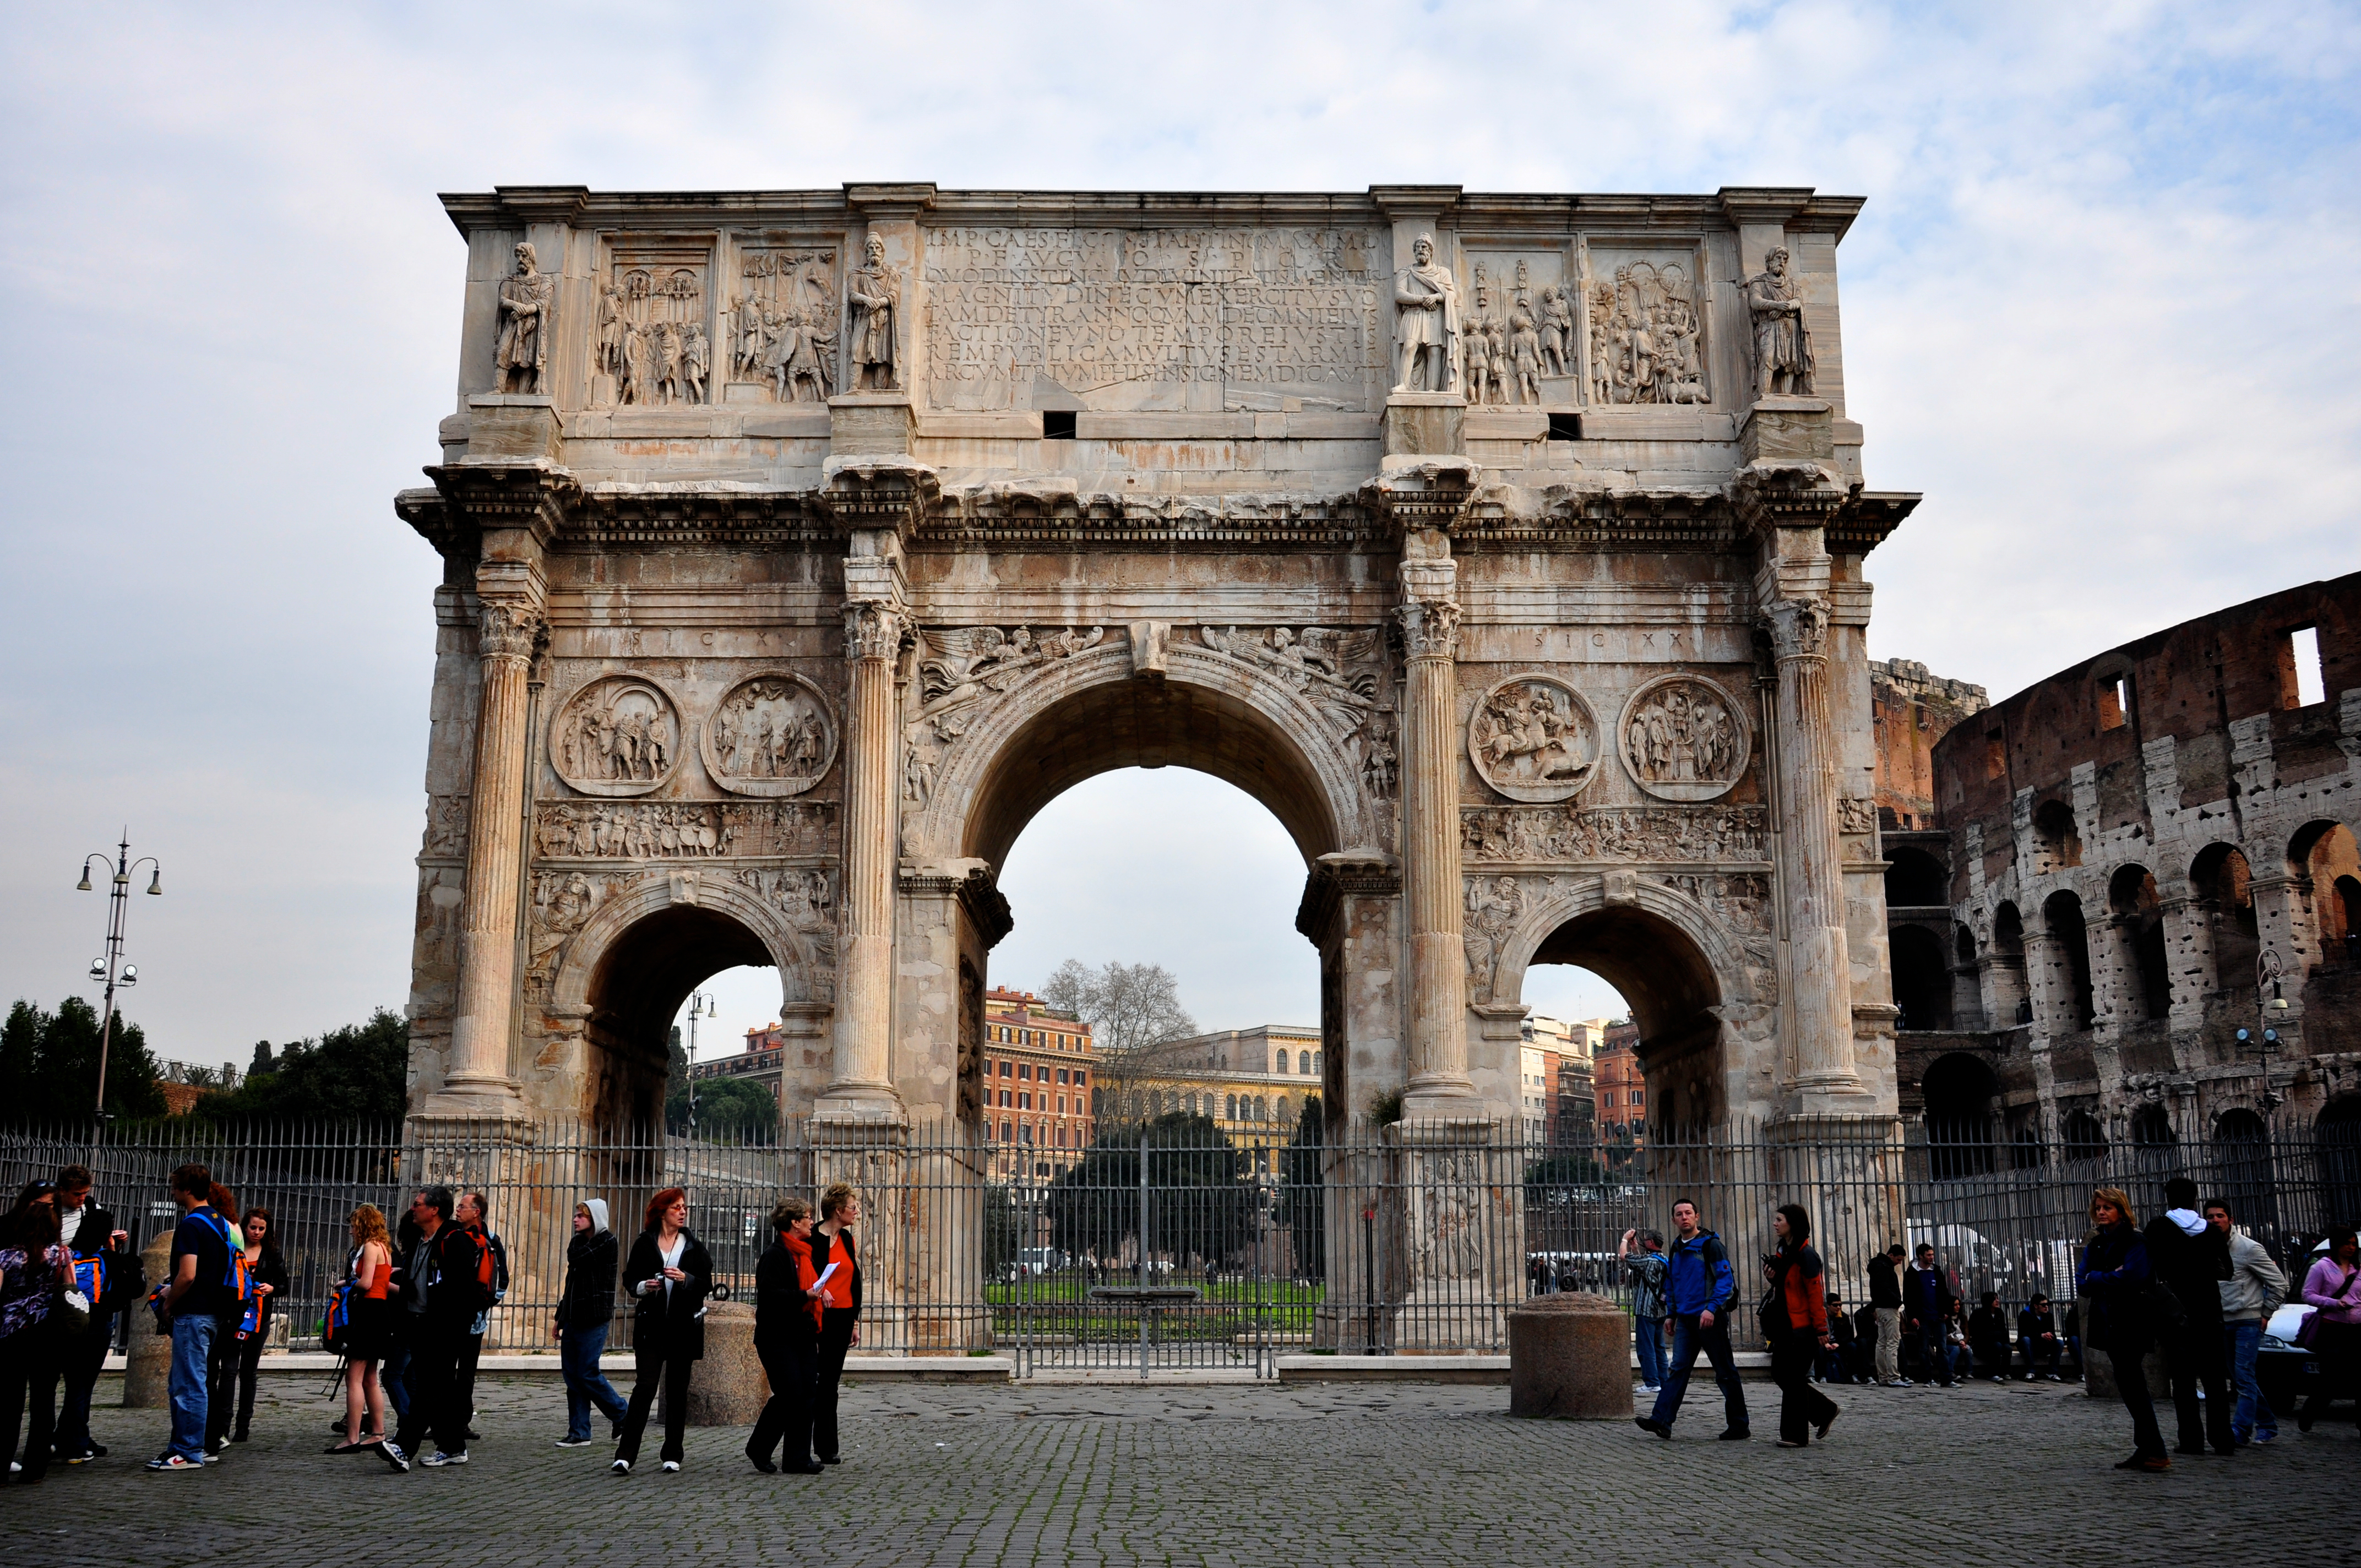 the arch of constantine The arch of constantine is the largest roman triumphal arch still standing the arch of constantine is called a triumphal arch begun by the romans, these types of monuments were built to both honor people and commemorate important events.